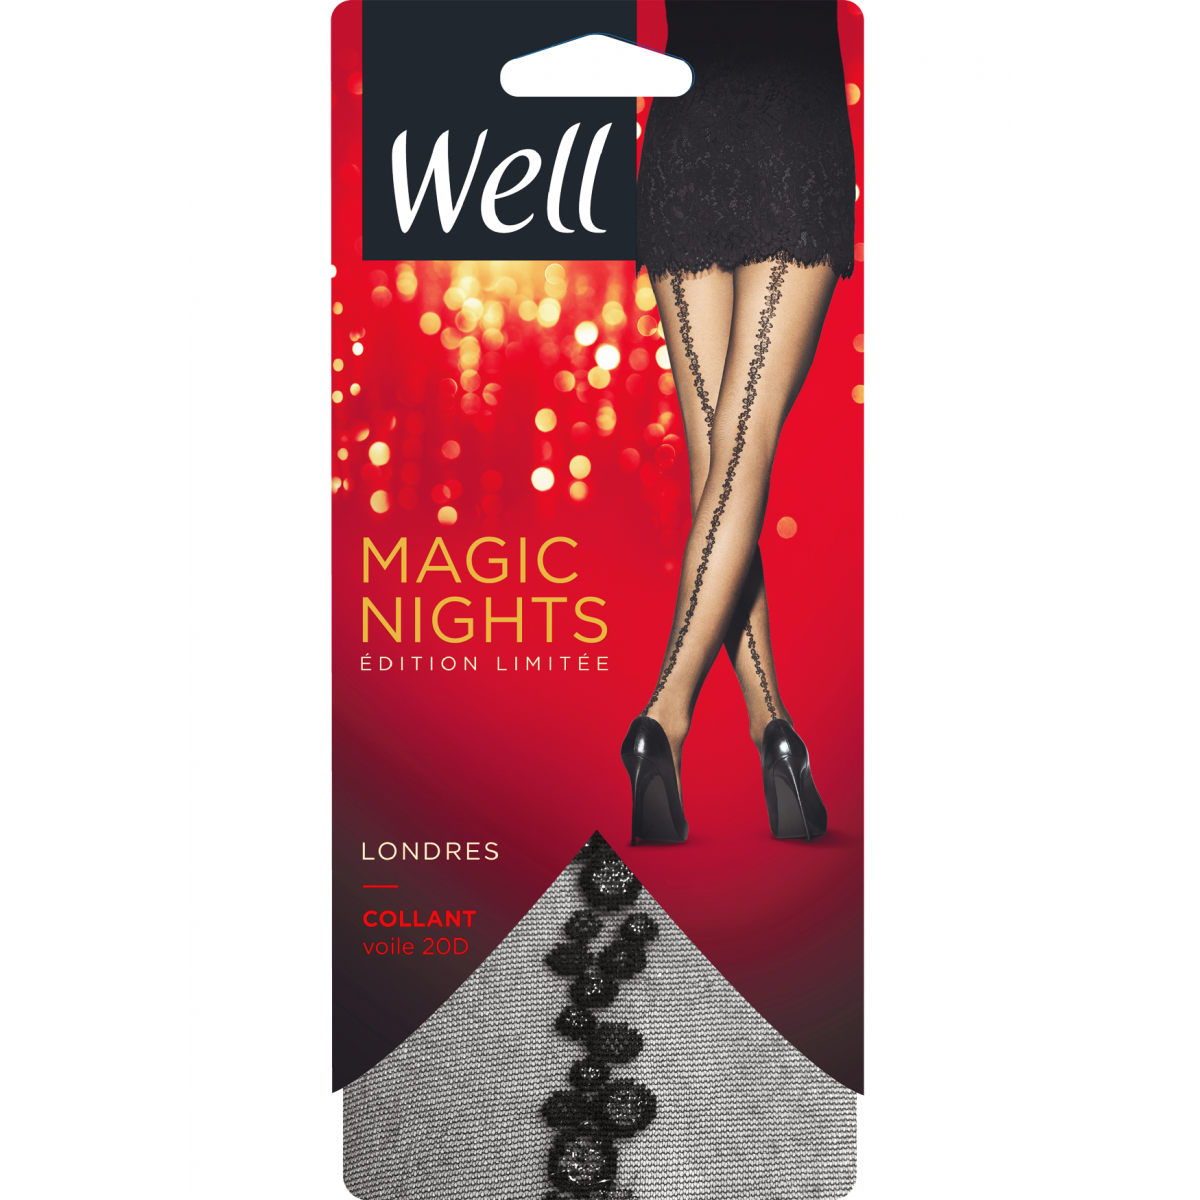 Magic Nights Londres Collant Voile